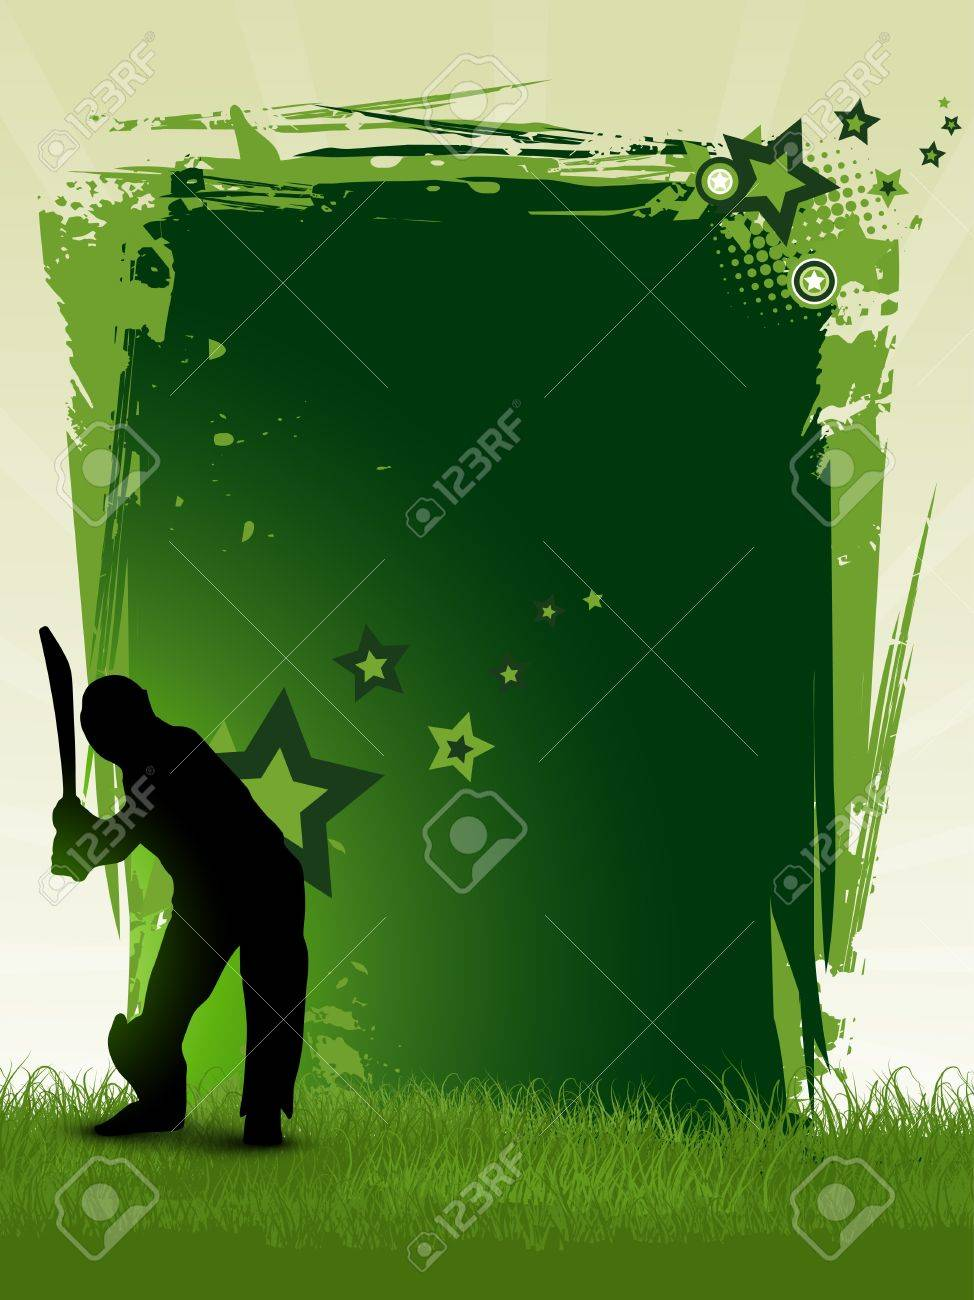 cricket background with space for your text Stock Vector - 8949605